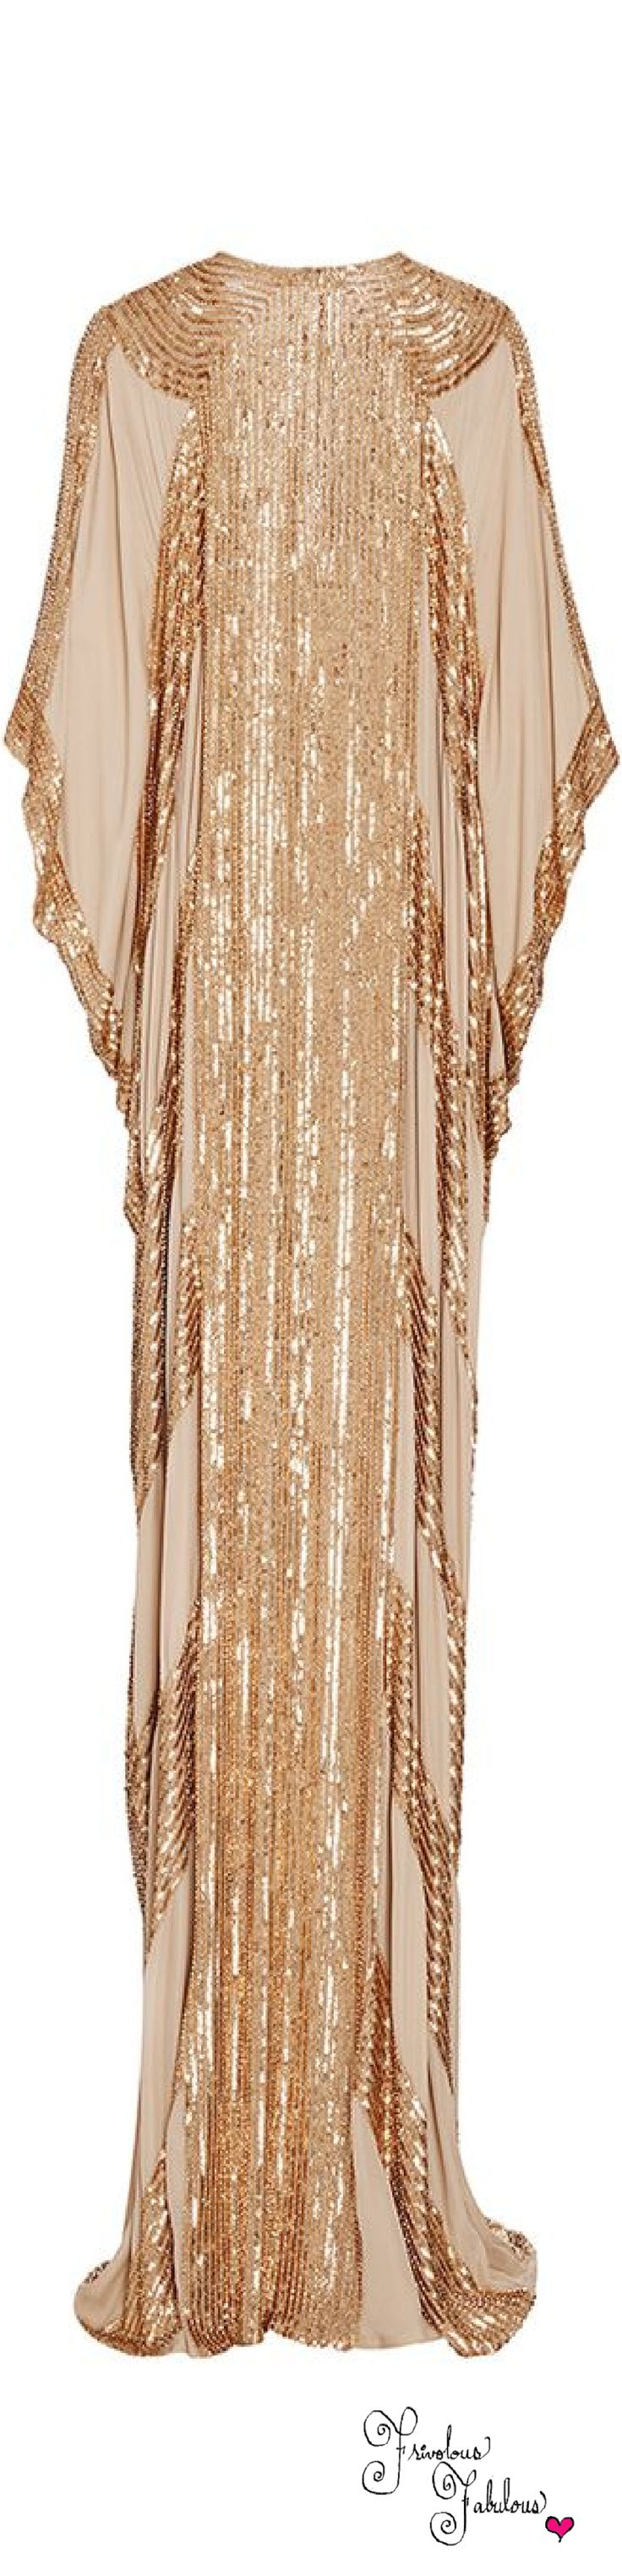 Frivolous Fabulous - Naeem Khan Metallic Linear Beaded Georgette Caftan Resort 2016 Back View